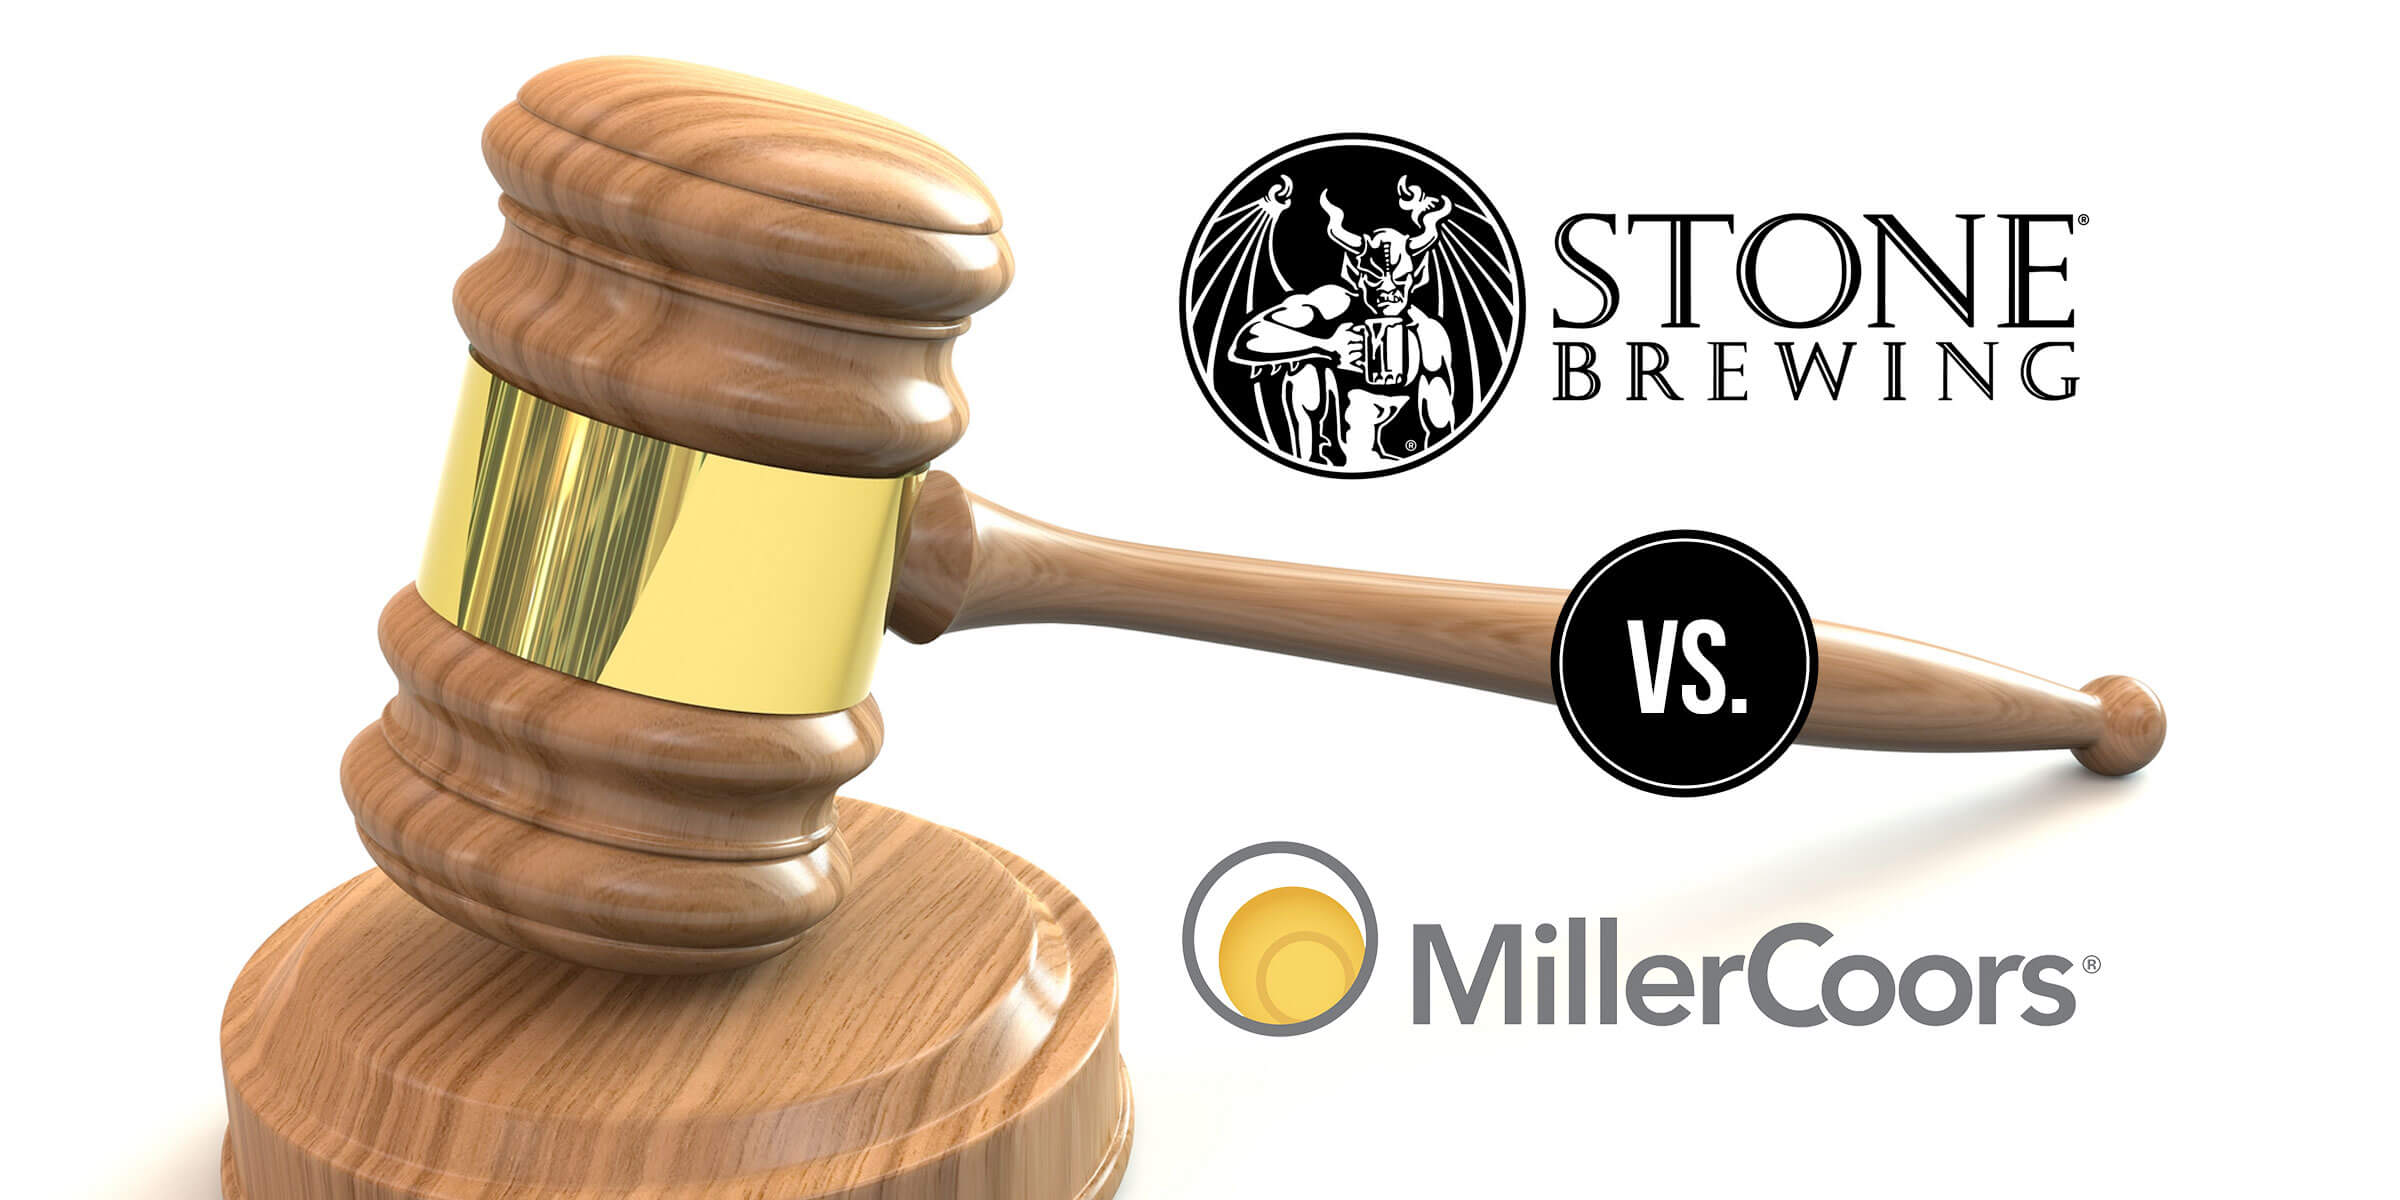 Stone Brewing has filed suit against MillerCoors on February 12.